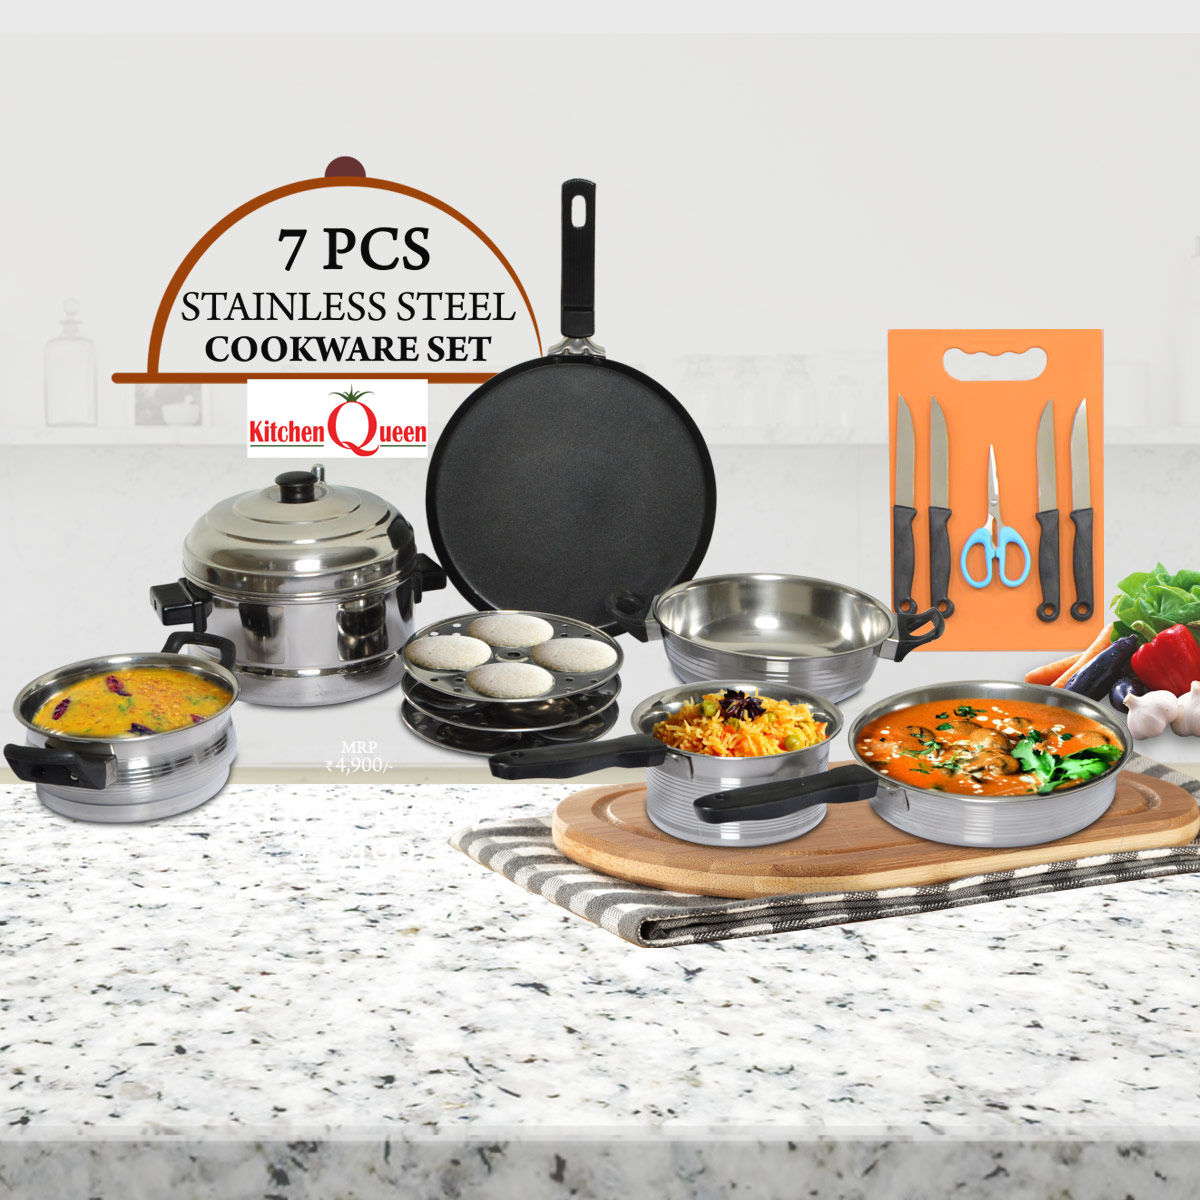 Buy 7 Pcs Stainless Steel Cookware Online At Best Price In India On